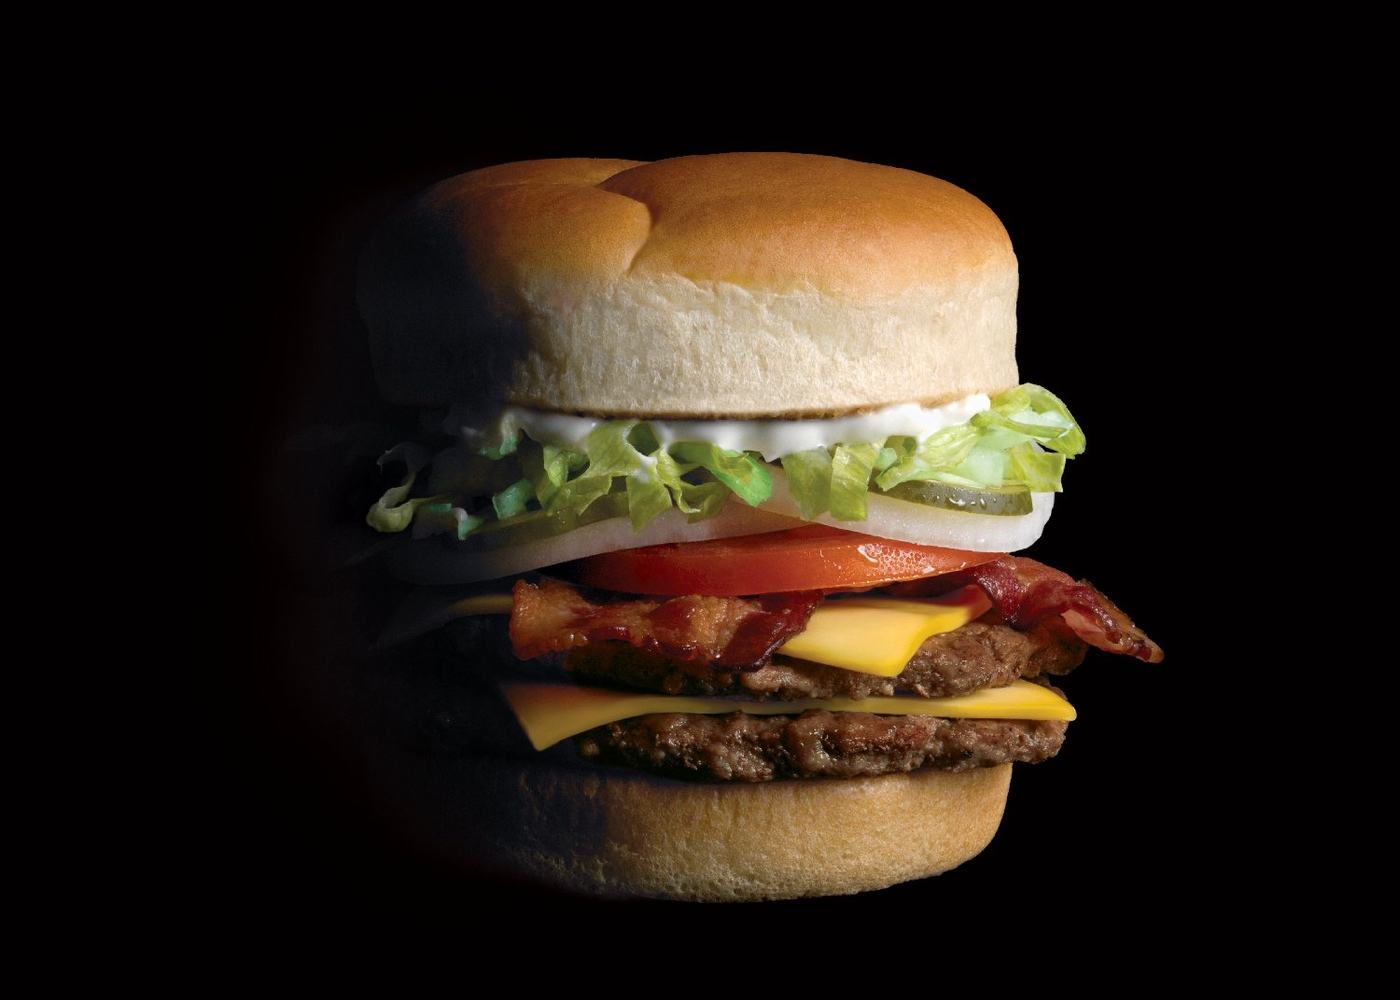 Bacon Double Cheeseburger with lettuce, onion, tomato, pickles, American cheese, and mayonnaise